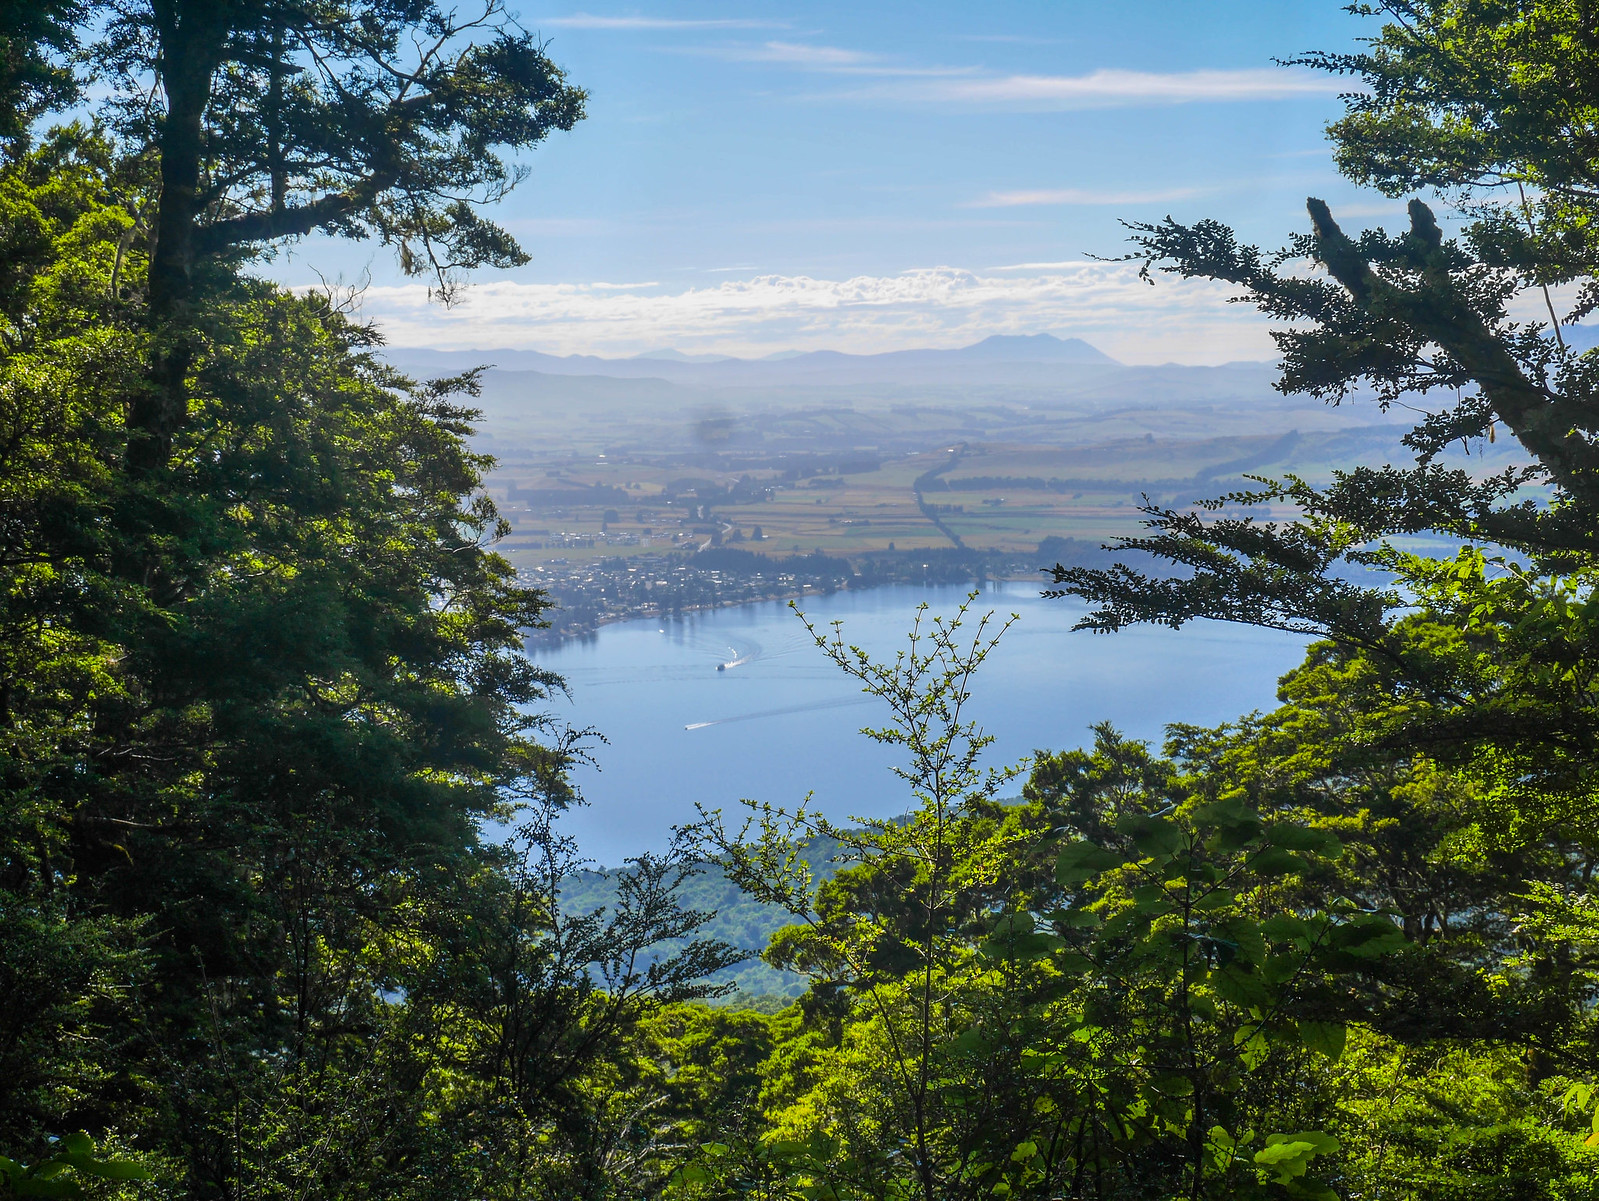 Trail climbs high above Lake Te Anau (and the town of Te Anau)